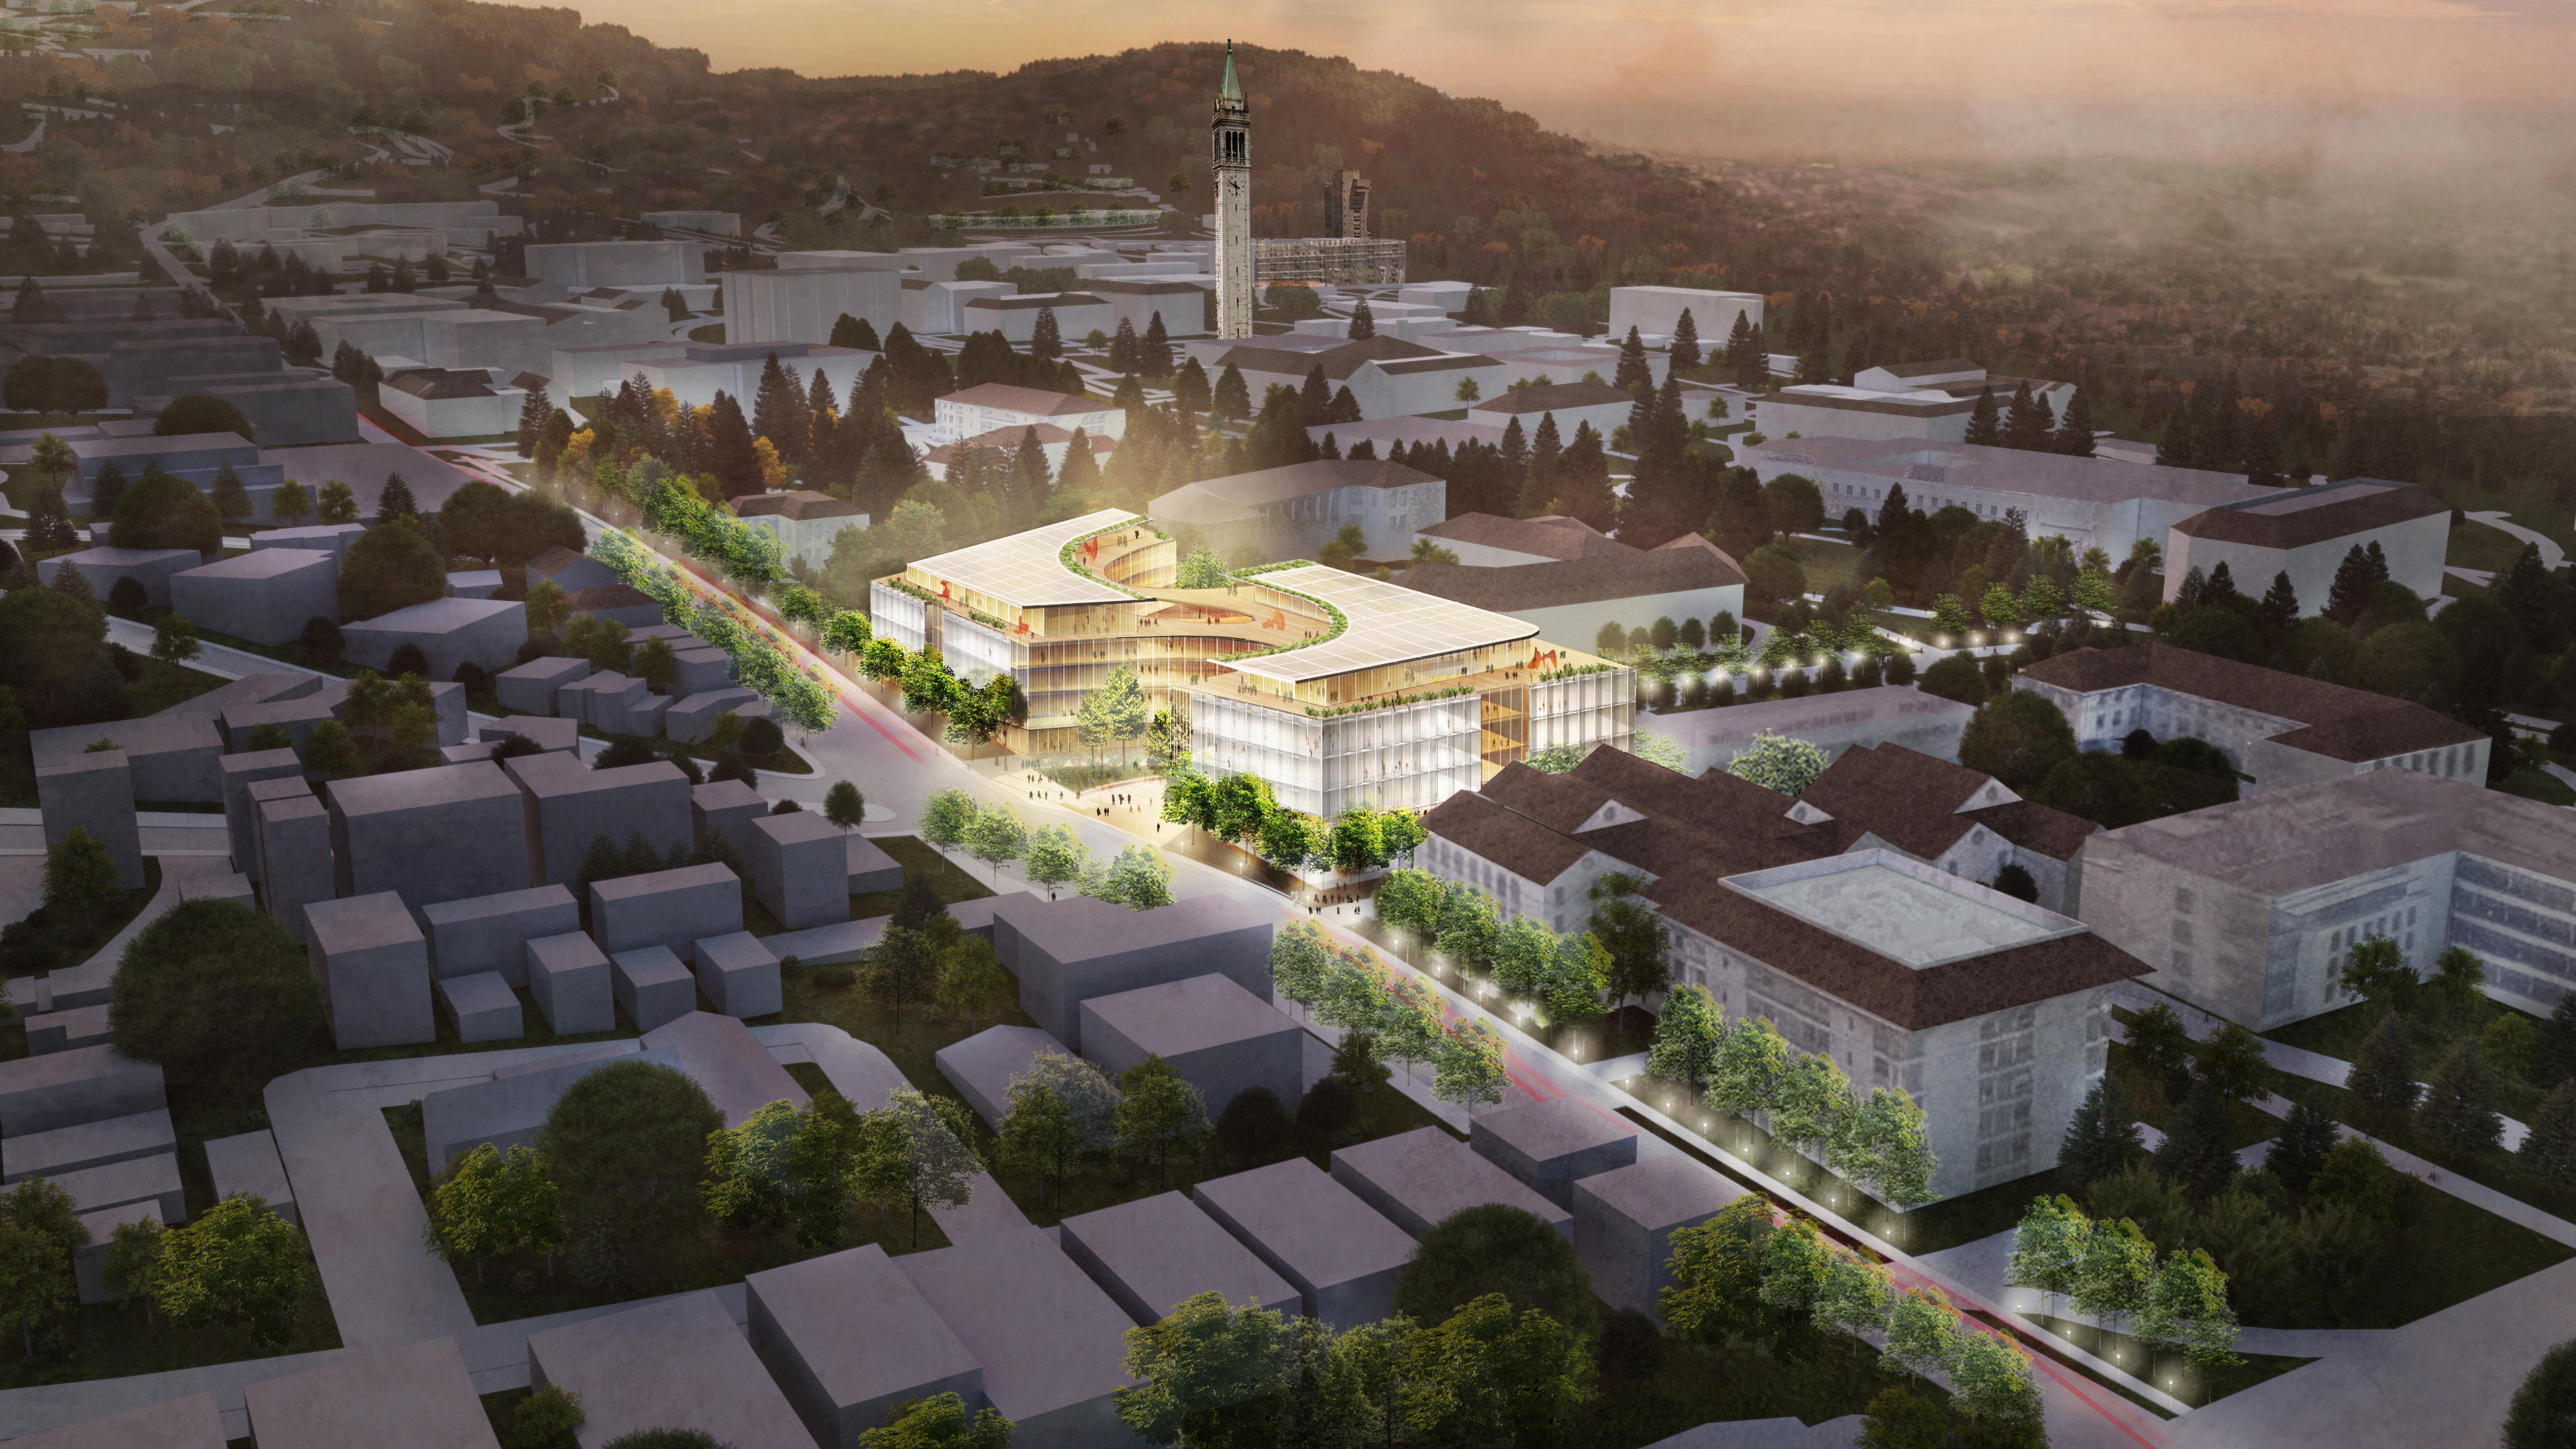 Rendering of the Gateway from above, showing the outline of the building illuminated and the surrounding buildings grayed out.